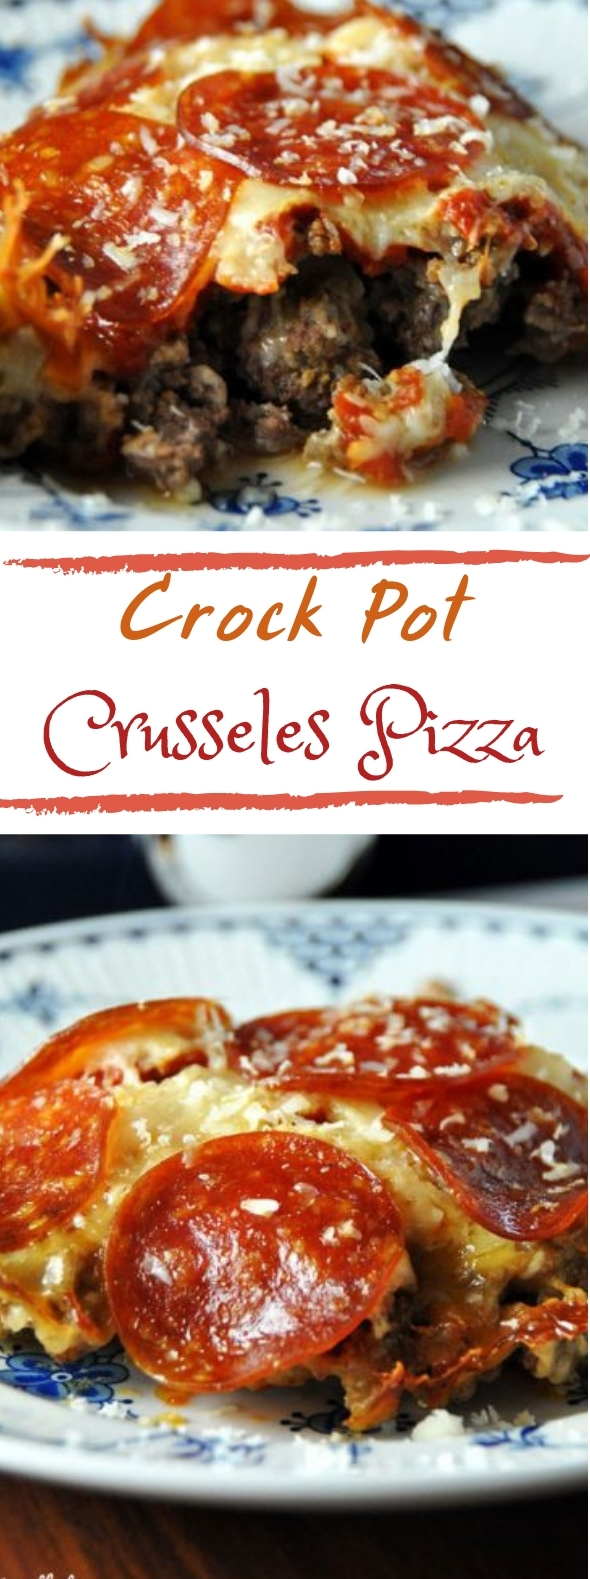 Crock Pot Crustless Pizza #lowcarb #healthymeal